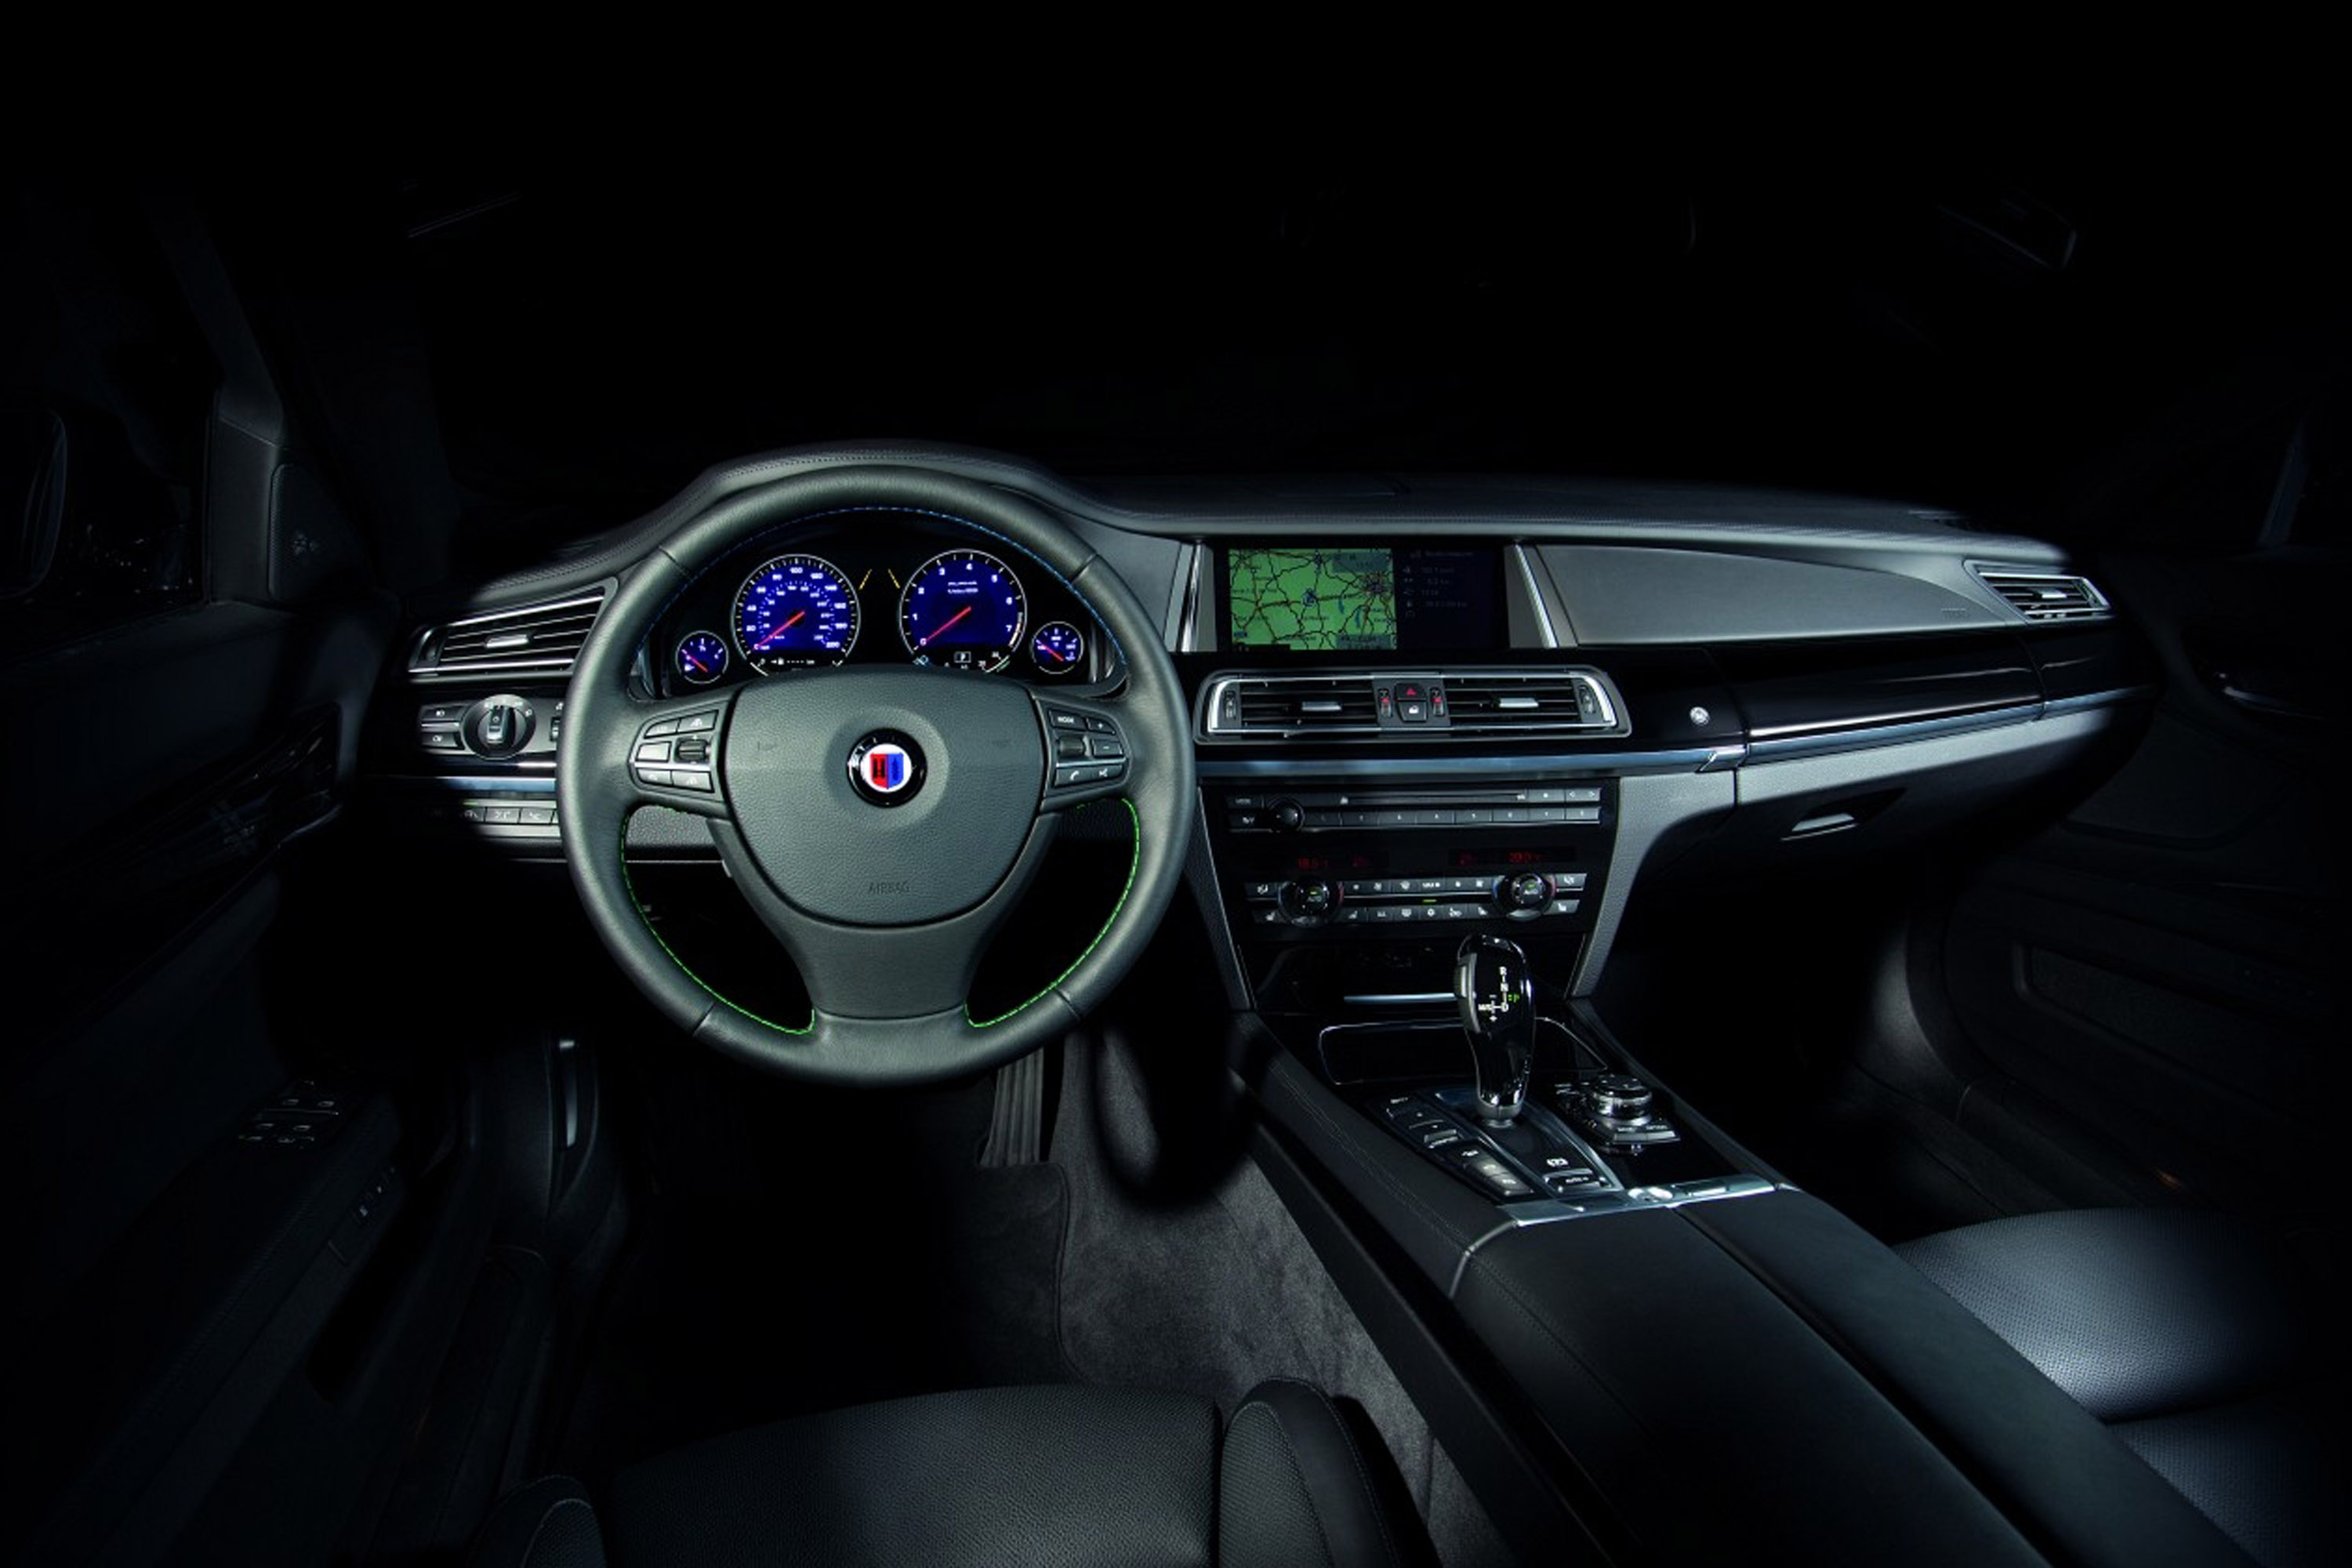 2013 bmw alpina b7 wallpaper hd-1080p | car wallpapers